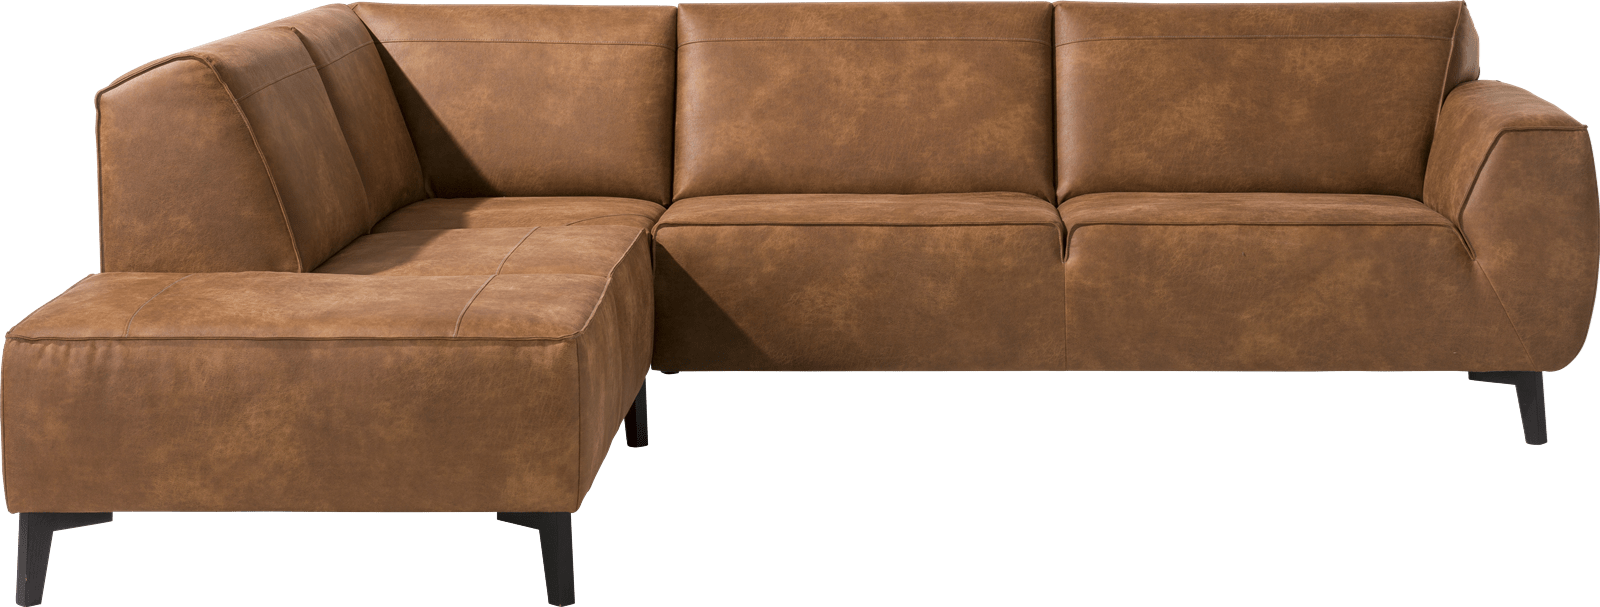 Lardos - Ottomane small left - corner part - 3 seater arm right